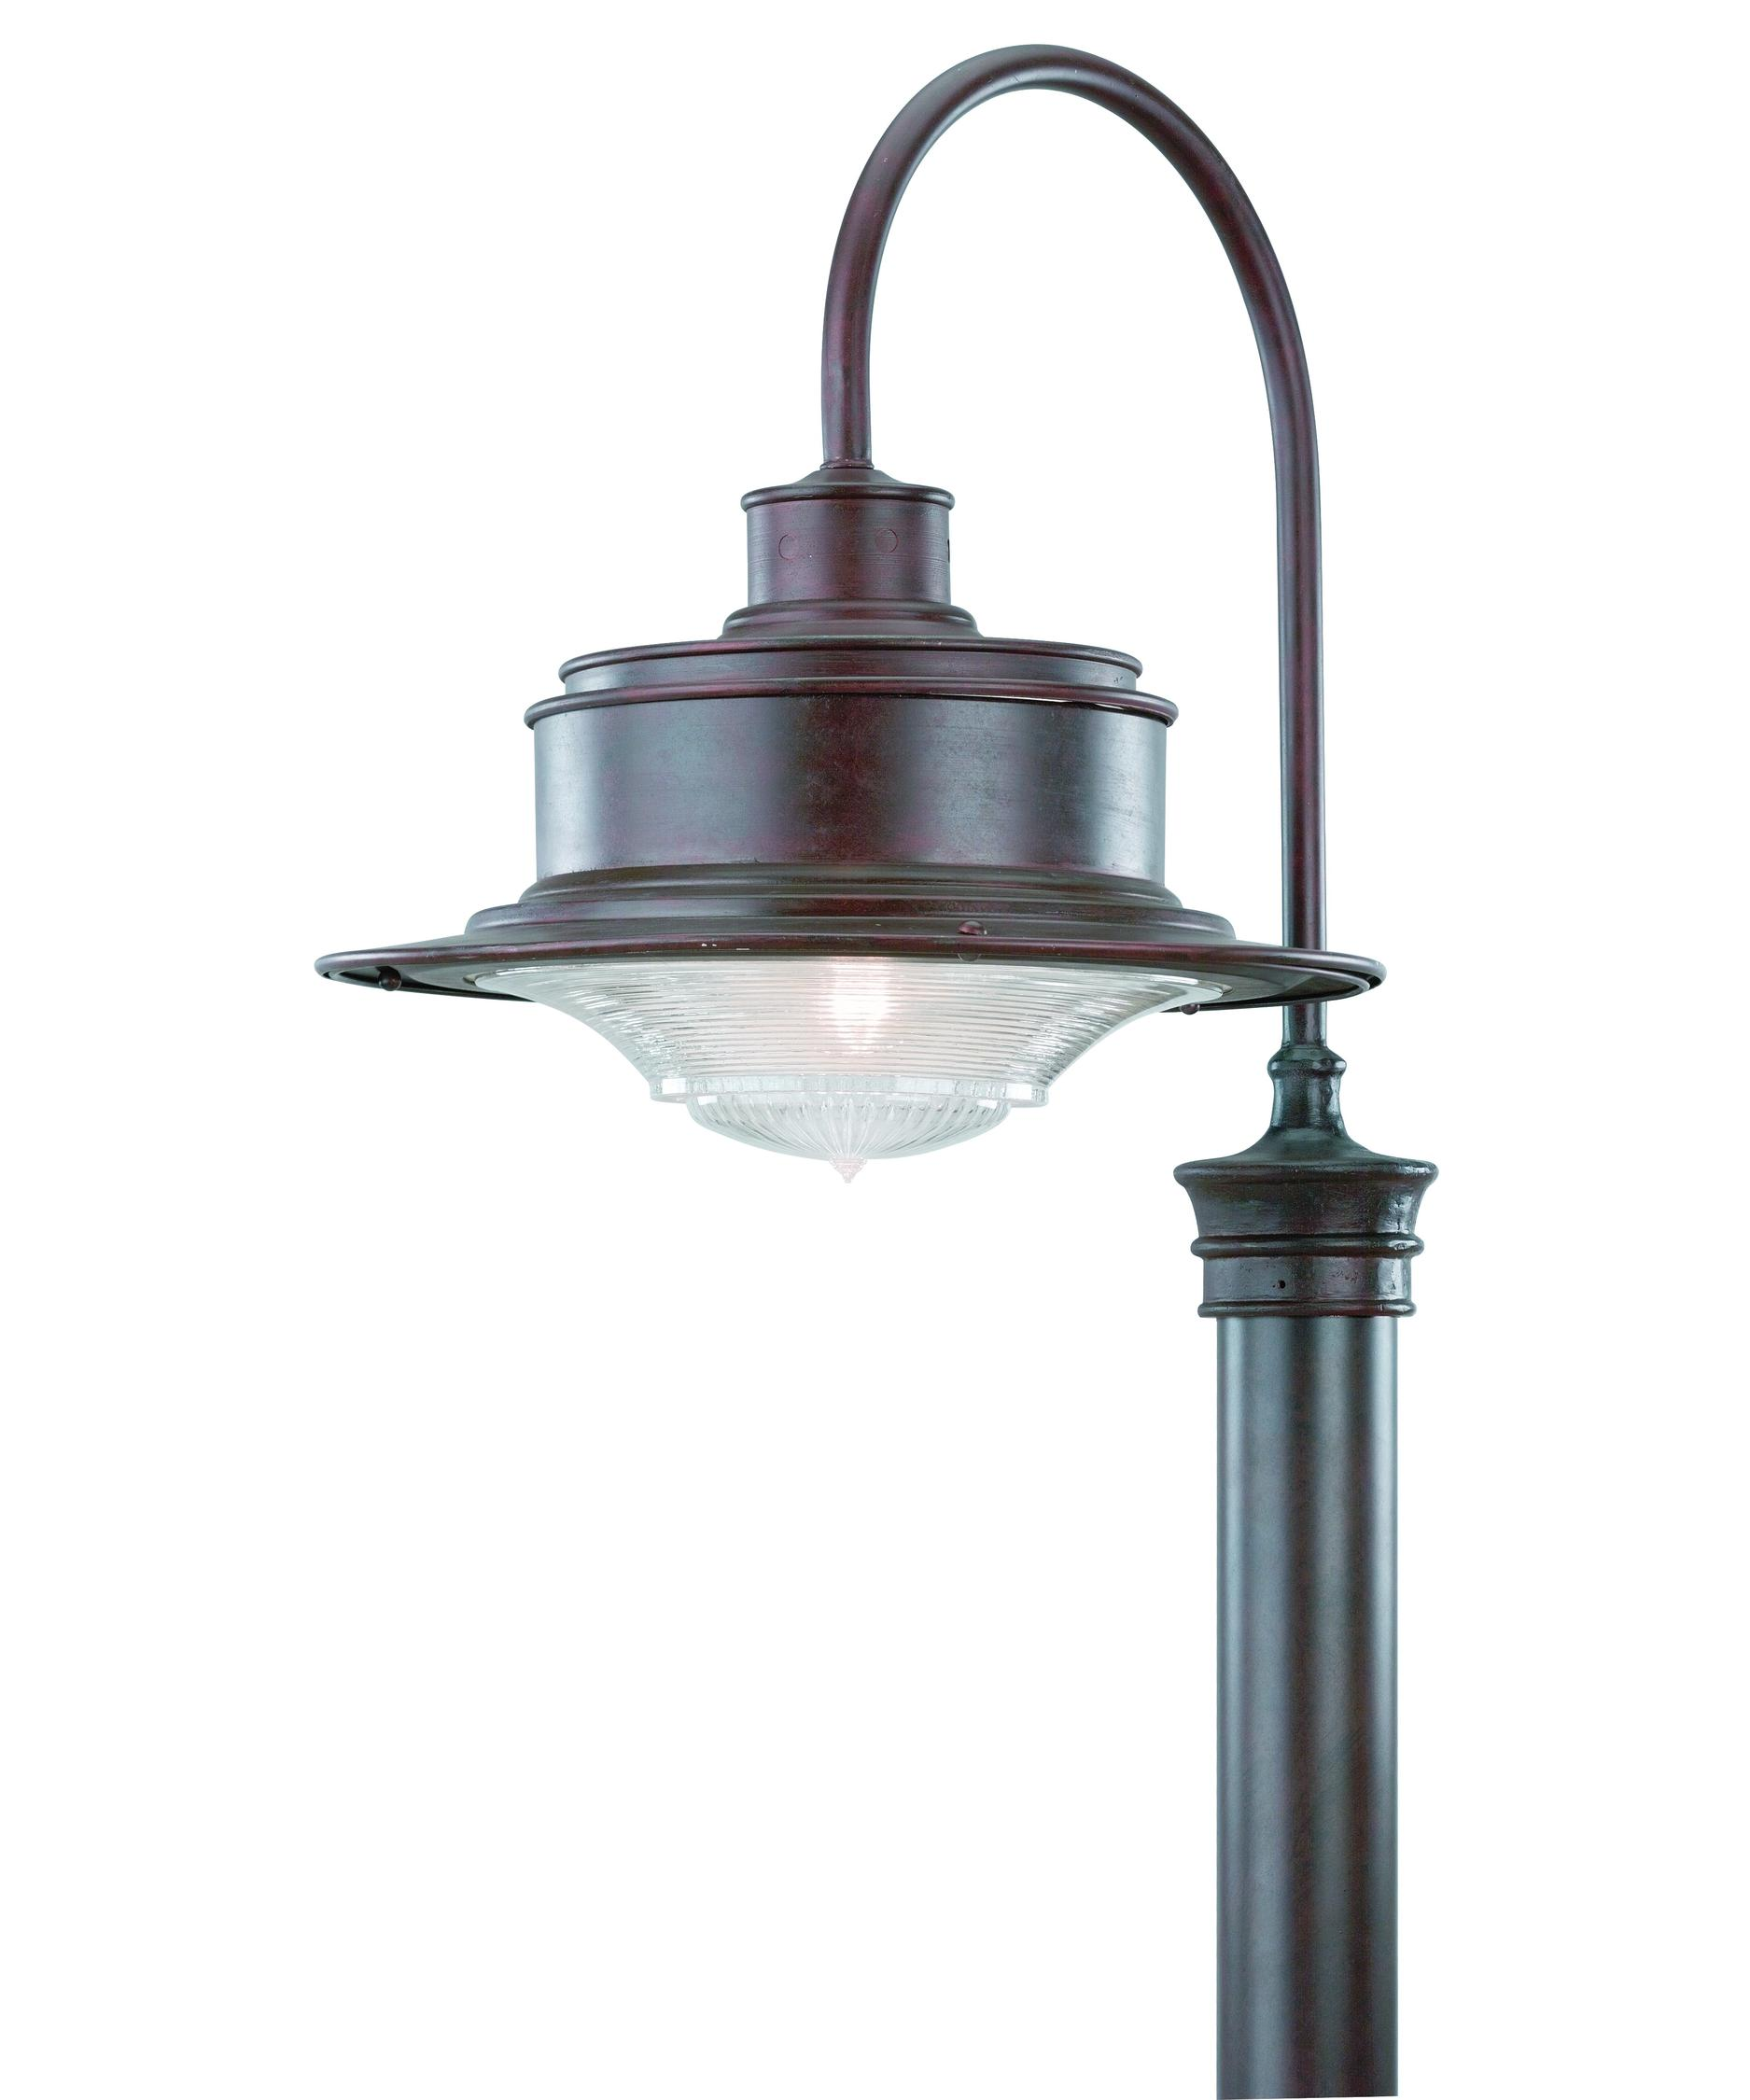 Outdoor Post Light Bulbs: Troy Lighting P9394 South Street 1 Light Outdoor Post Lamp